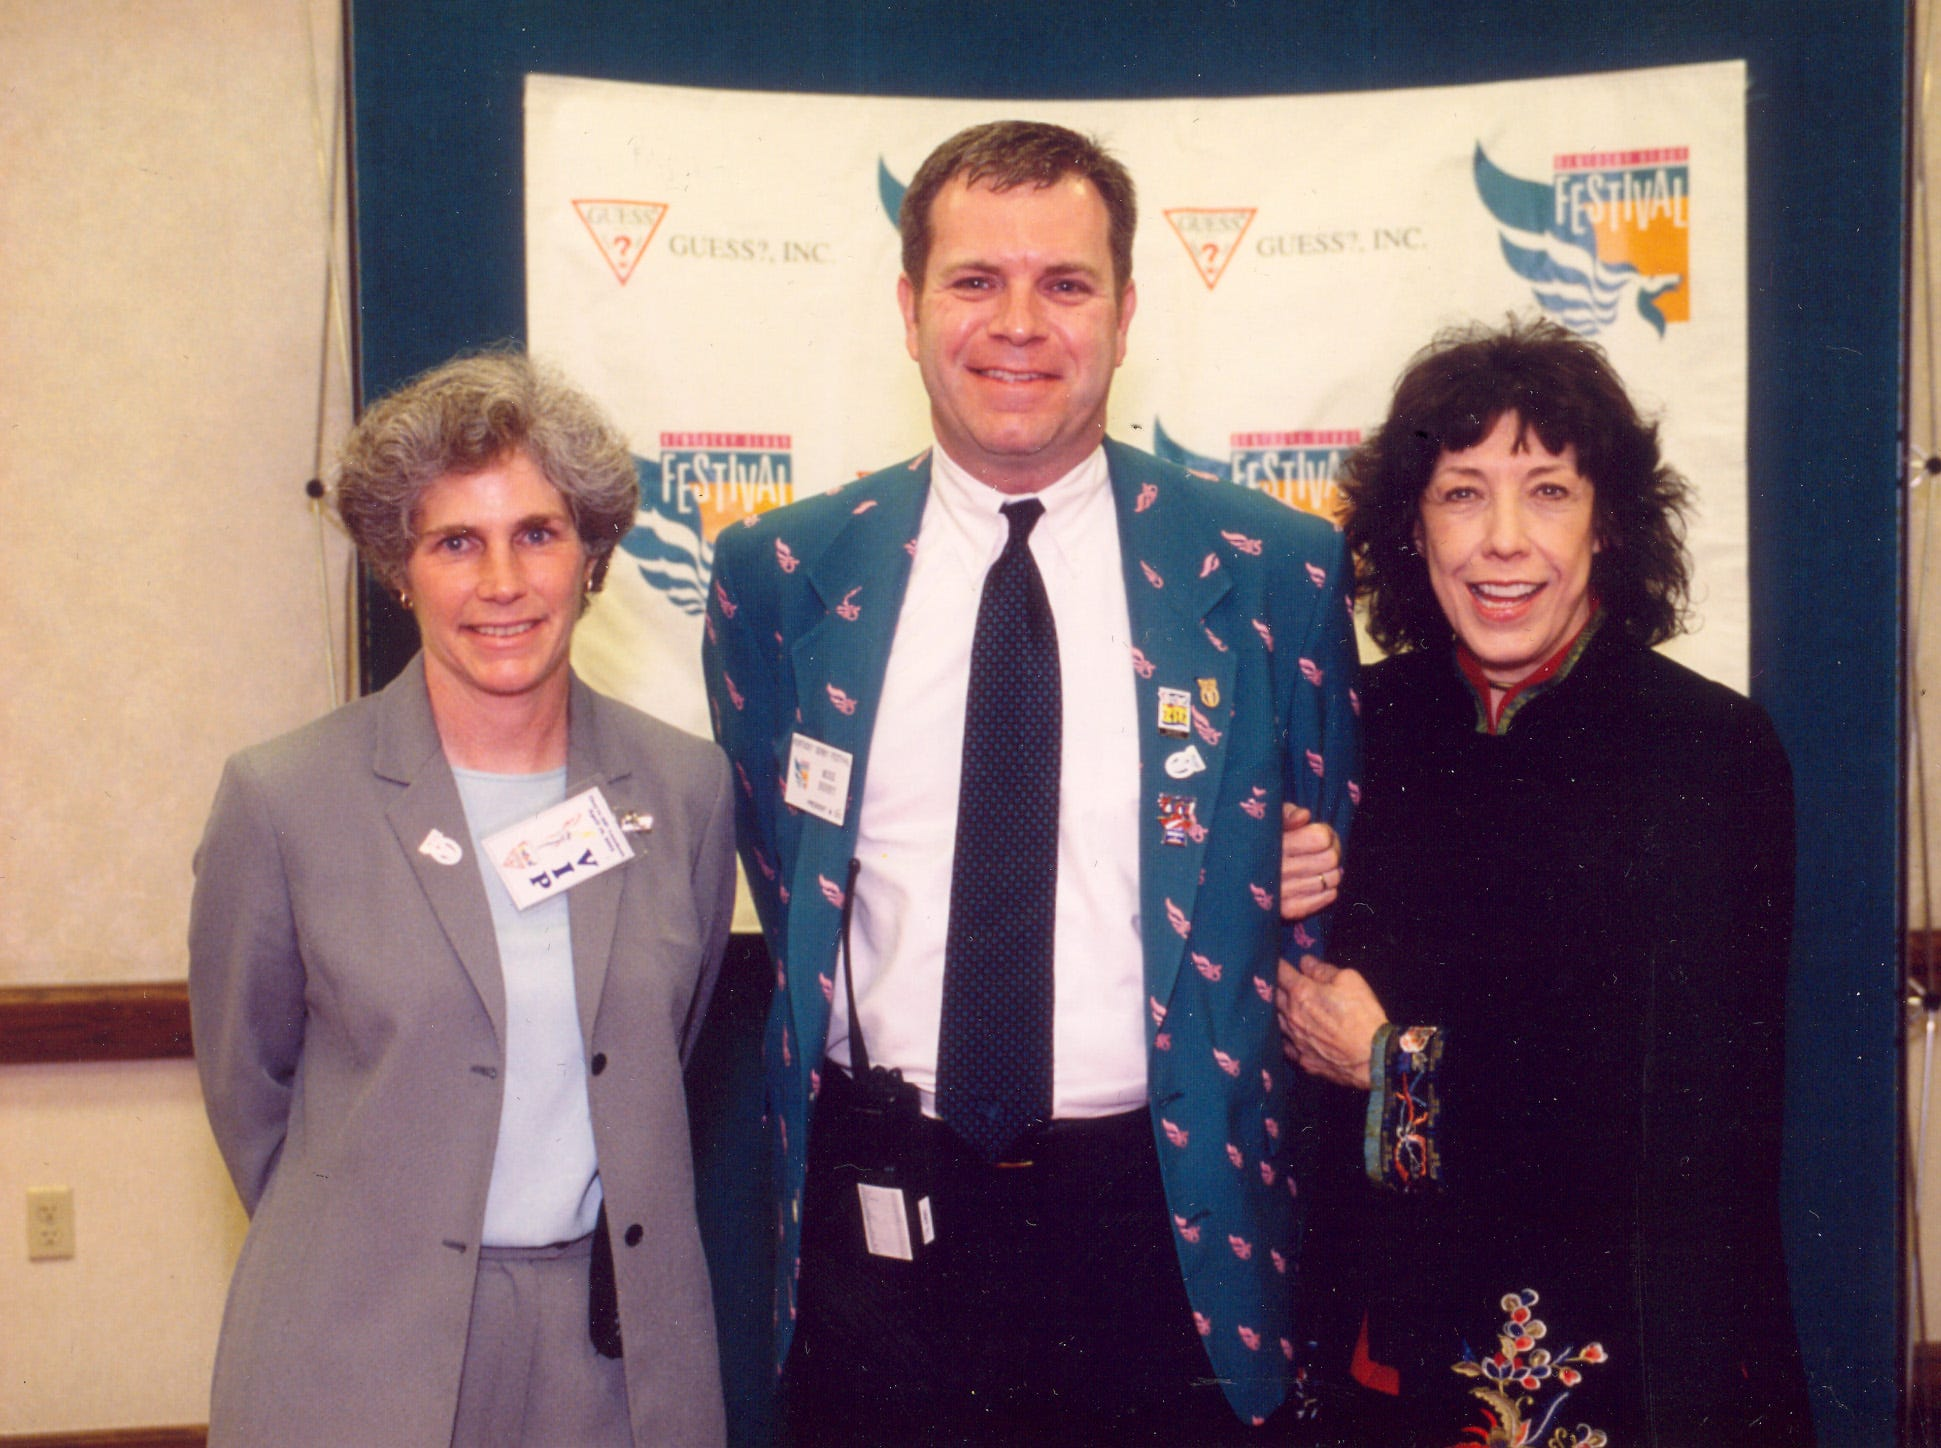 Mike Berry pictured with Lily Tomlin, right, and his sister, Marsha Berry, left, in 2002 at the They're Off! Luncheon.